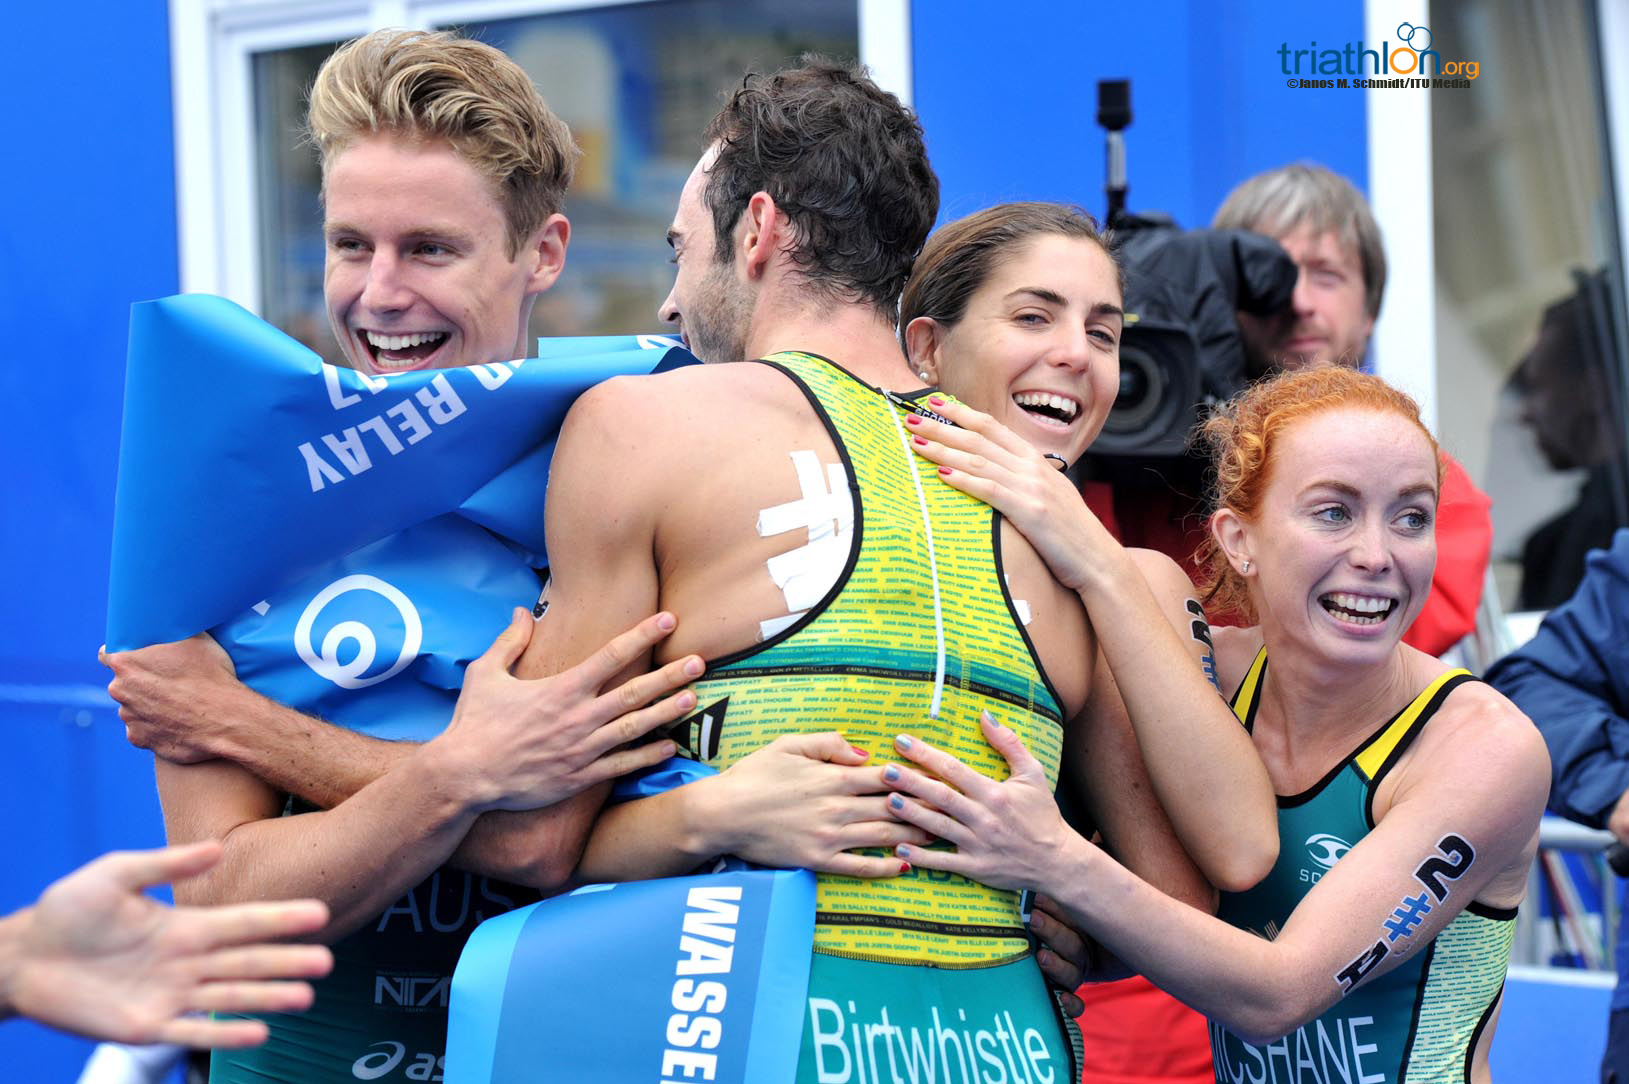 Australië wint de Mixed Team Relay in Hamburg (foto: ITU/Janos M. Schmidt)